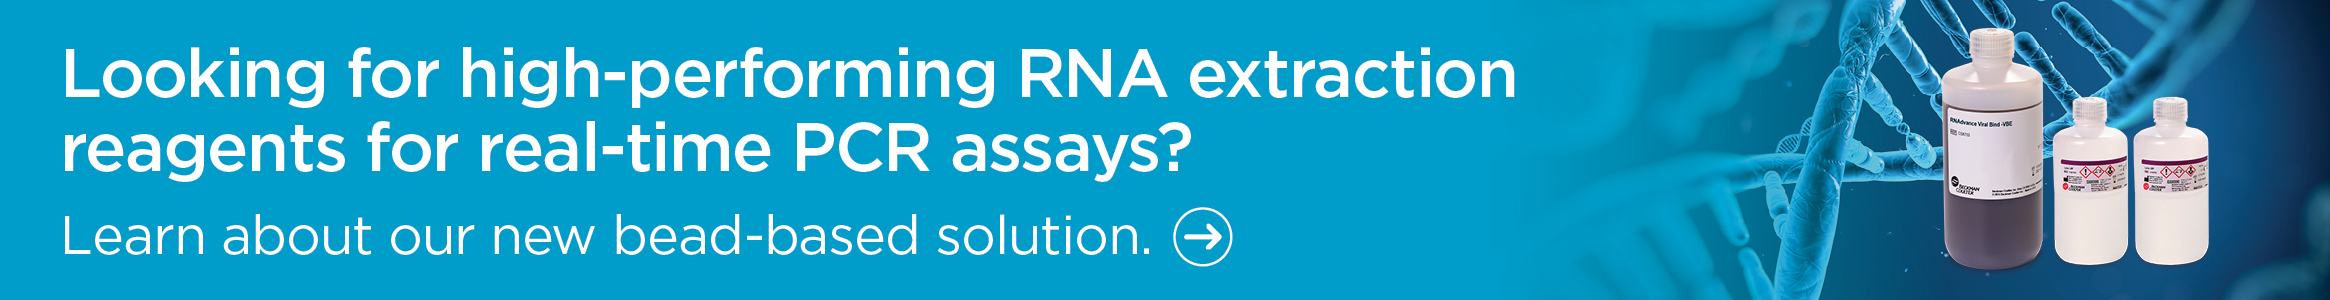 Looking for high-performance RNA extraction reagents for real-time PCR assays v1